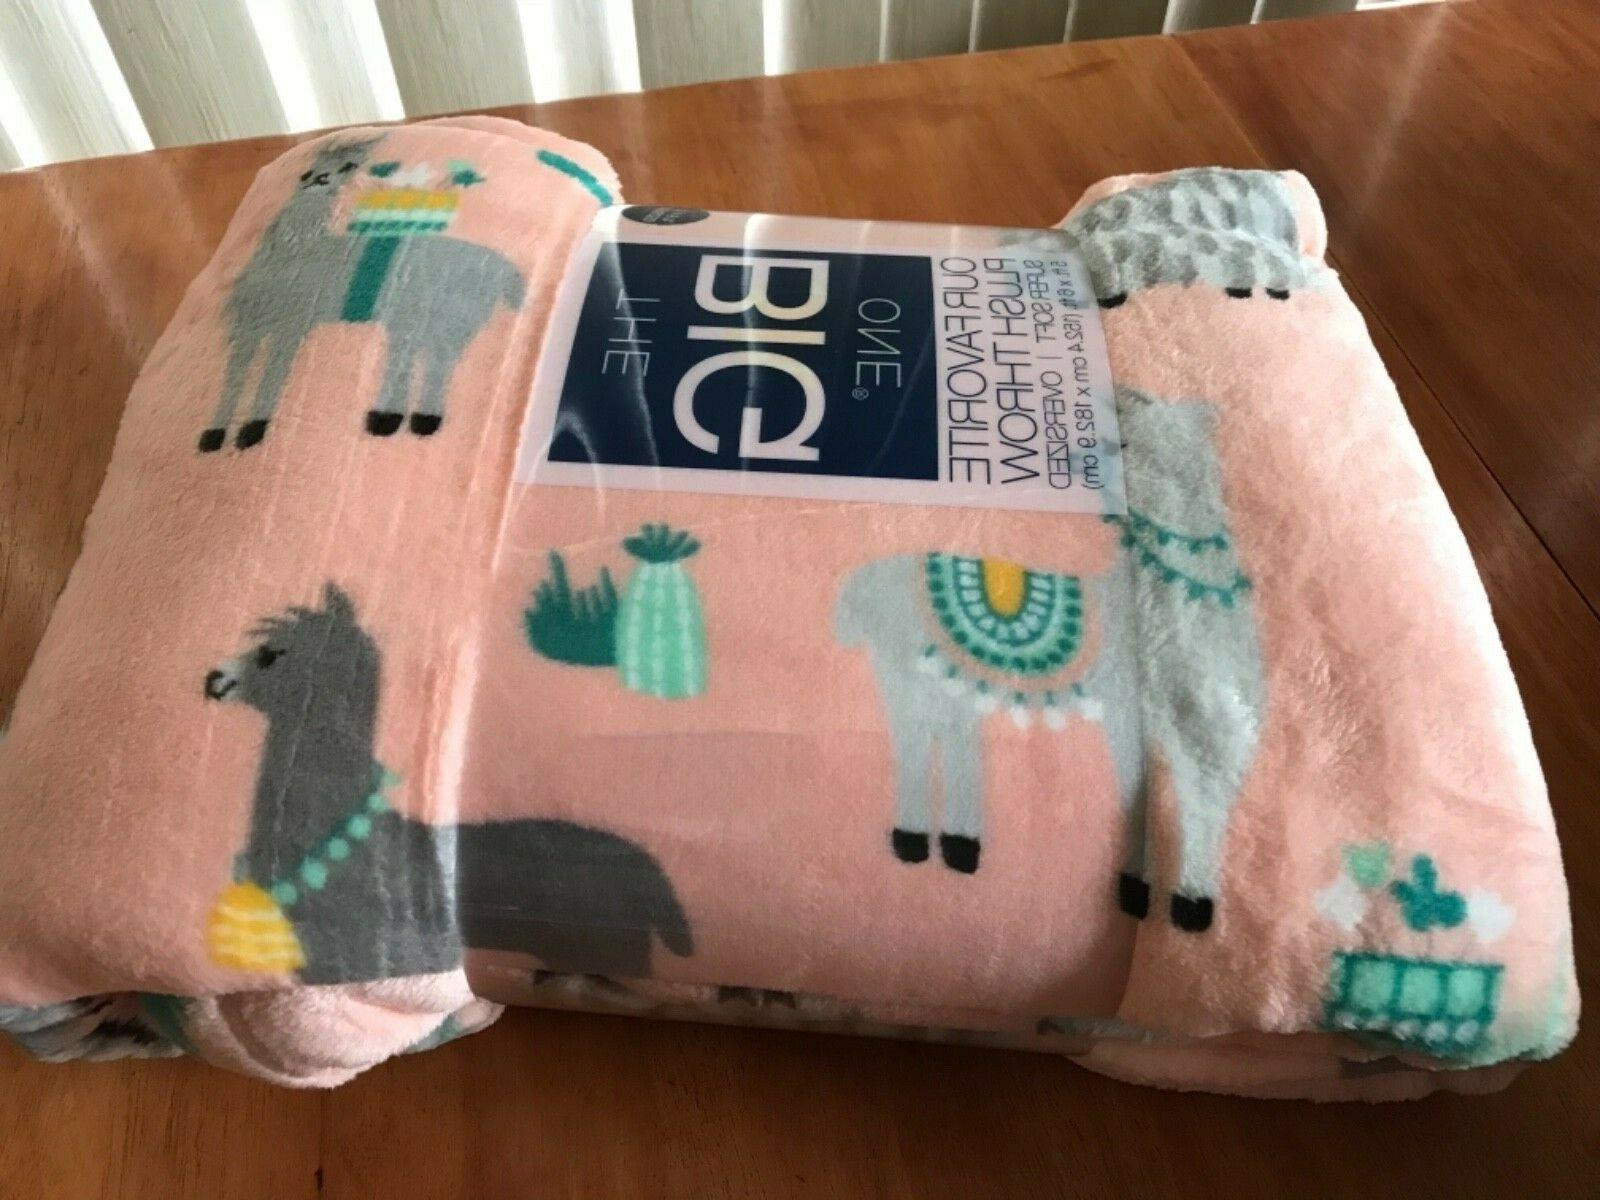 New The One Oversized Pink Llamas Soft Throw Blanket 5' x